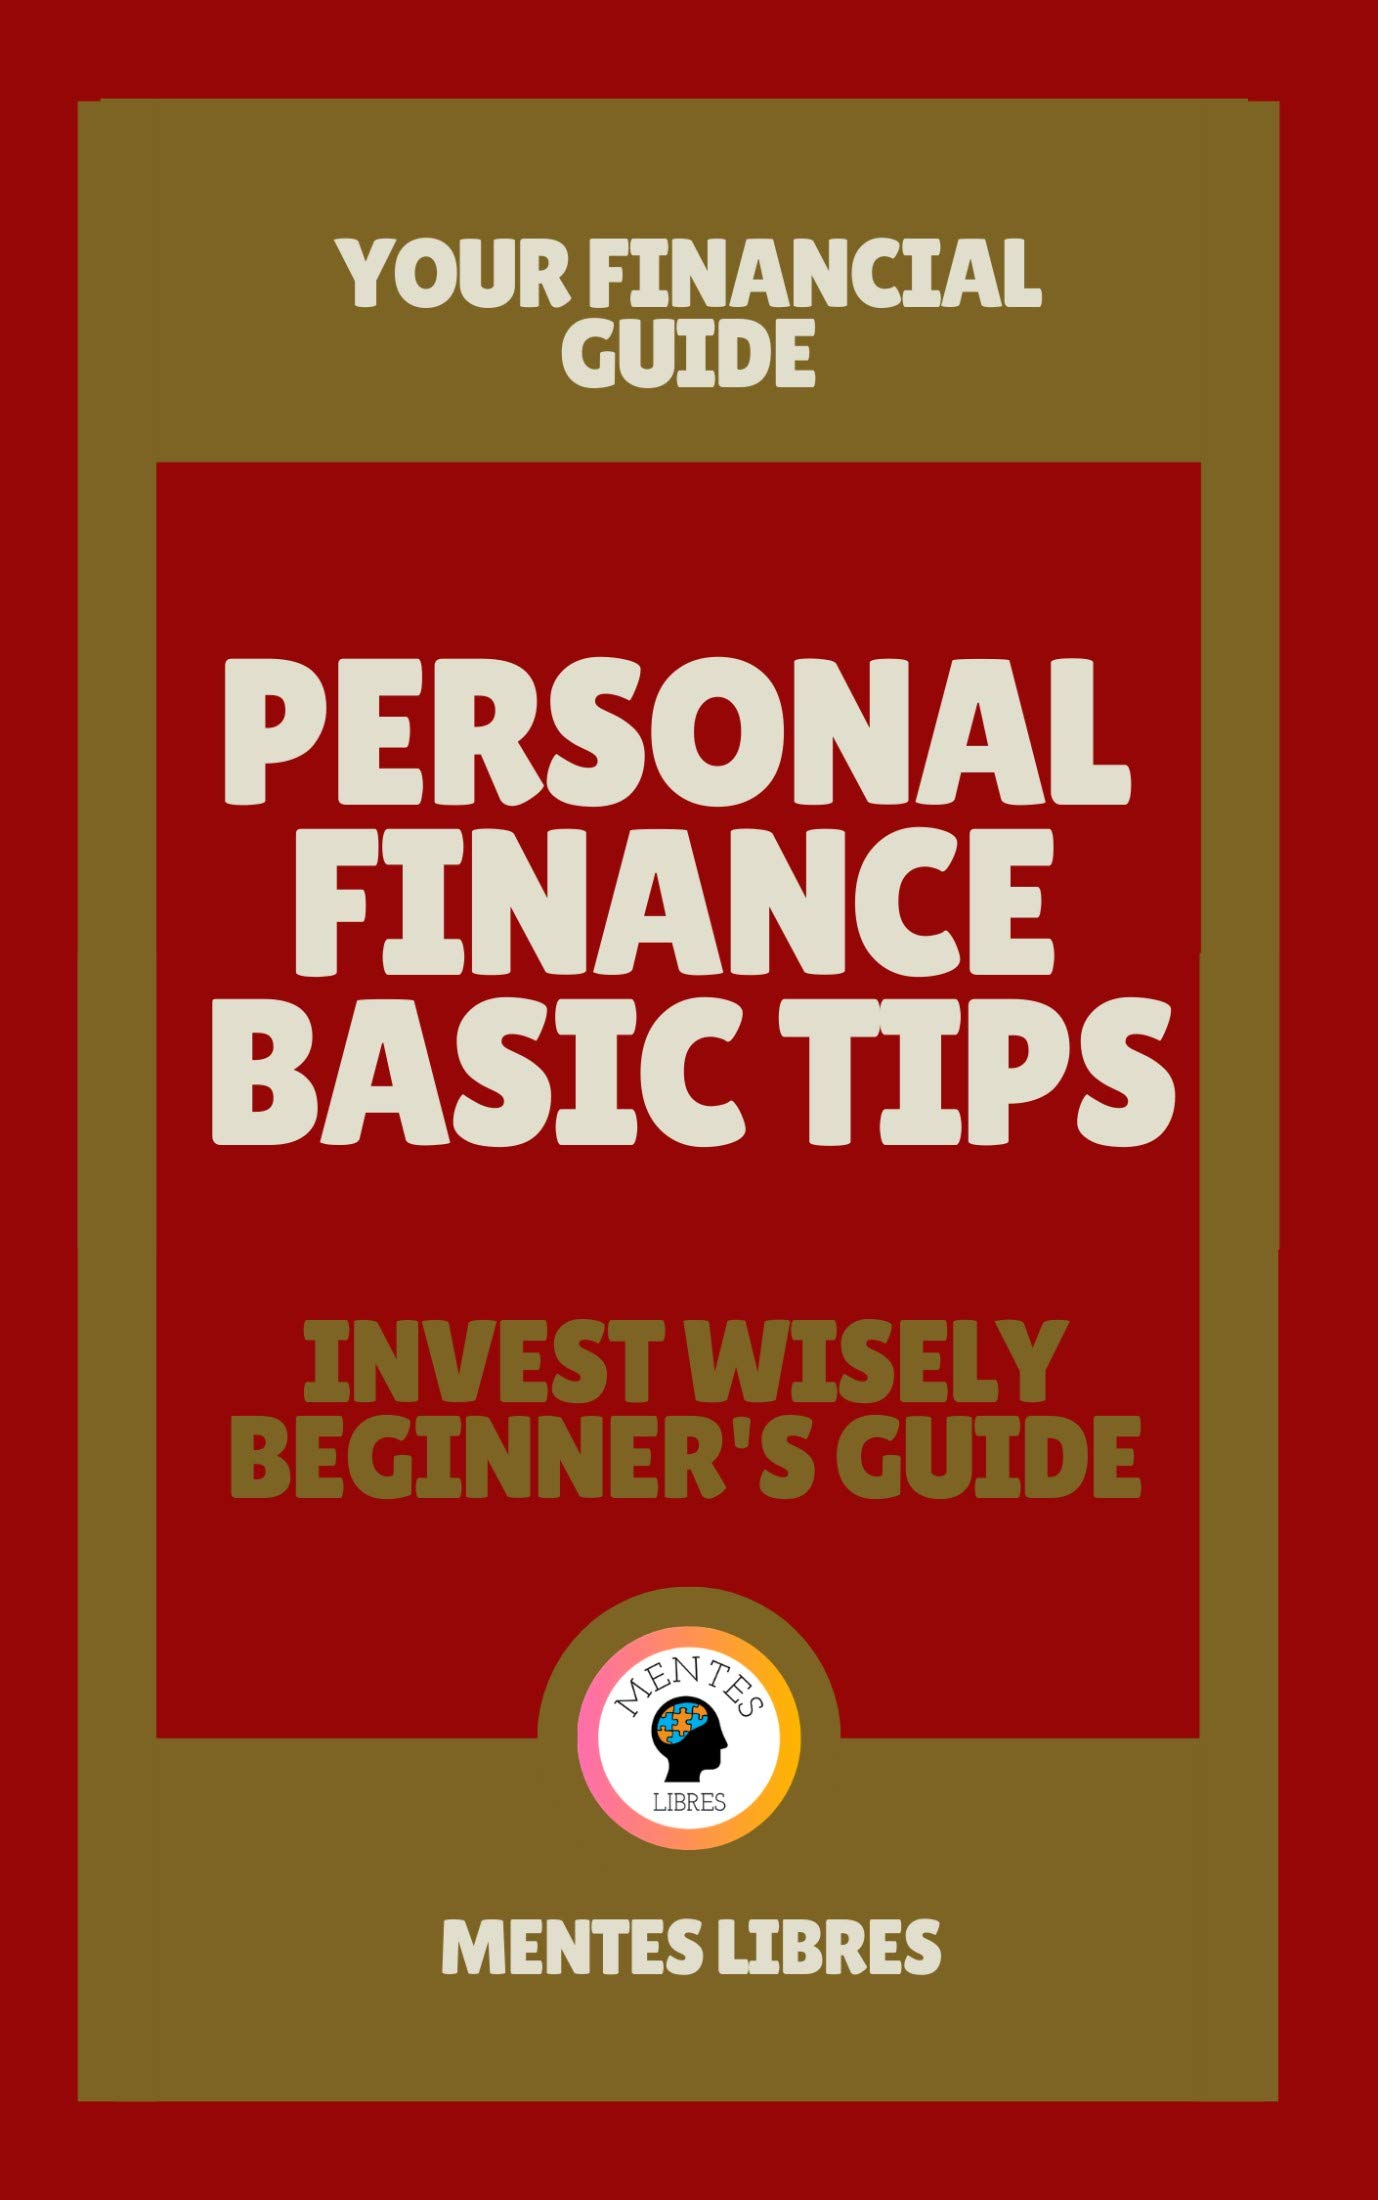 PERSONAL FINANCE BASIC TIPS- INVEST WISELY BEGINNER'S GUIDE: Your financial guide!